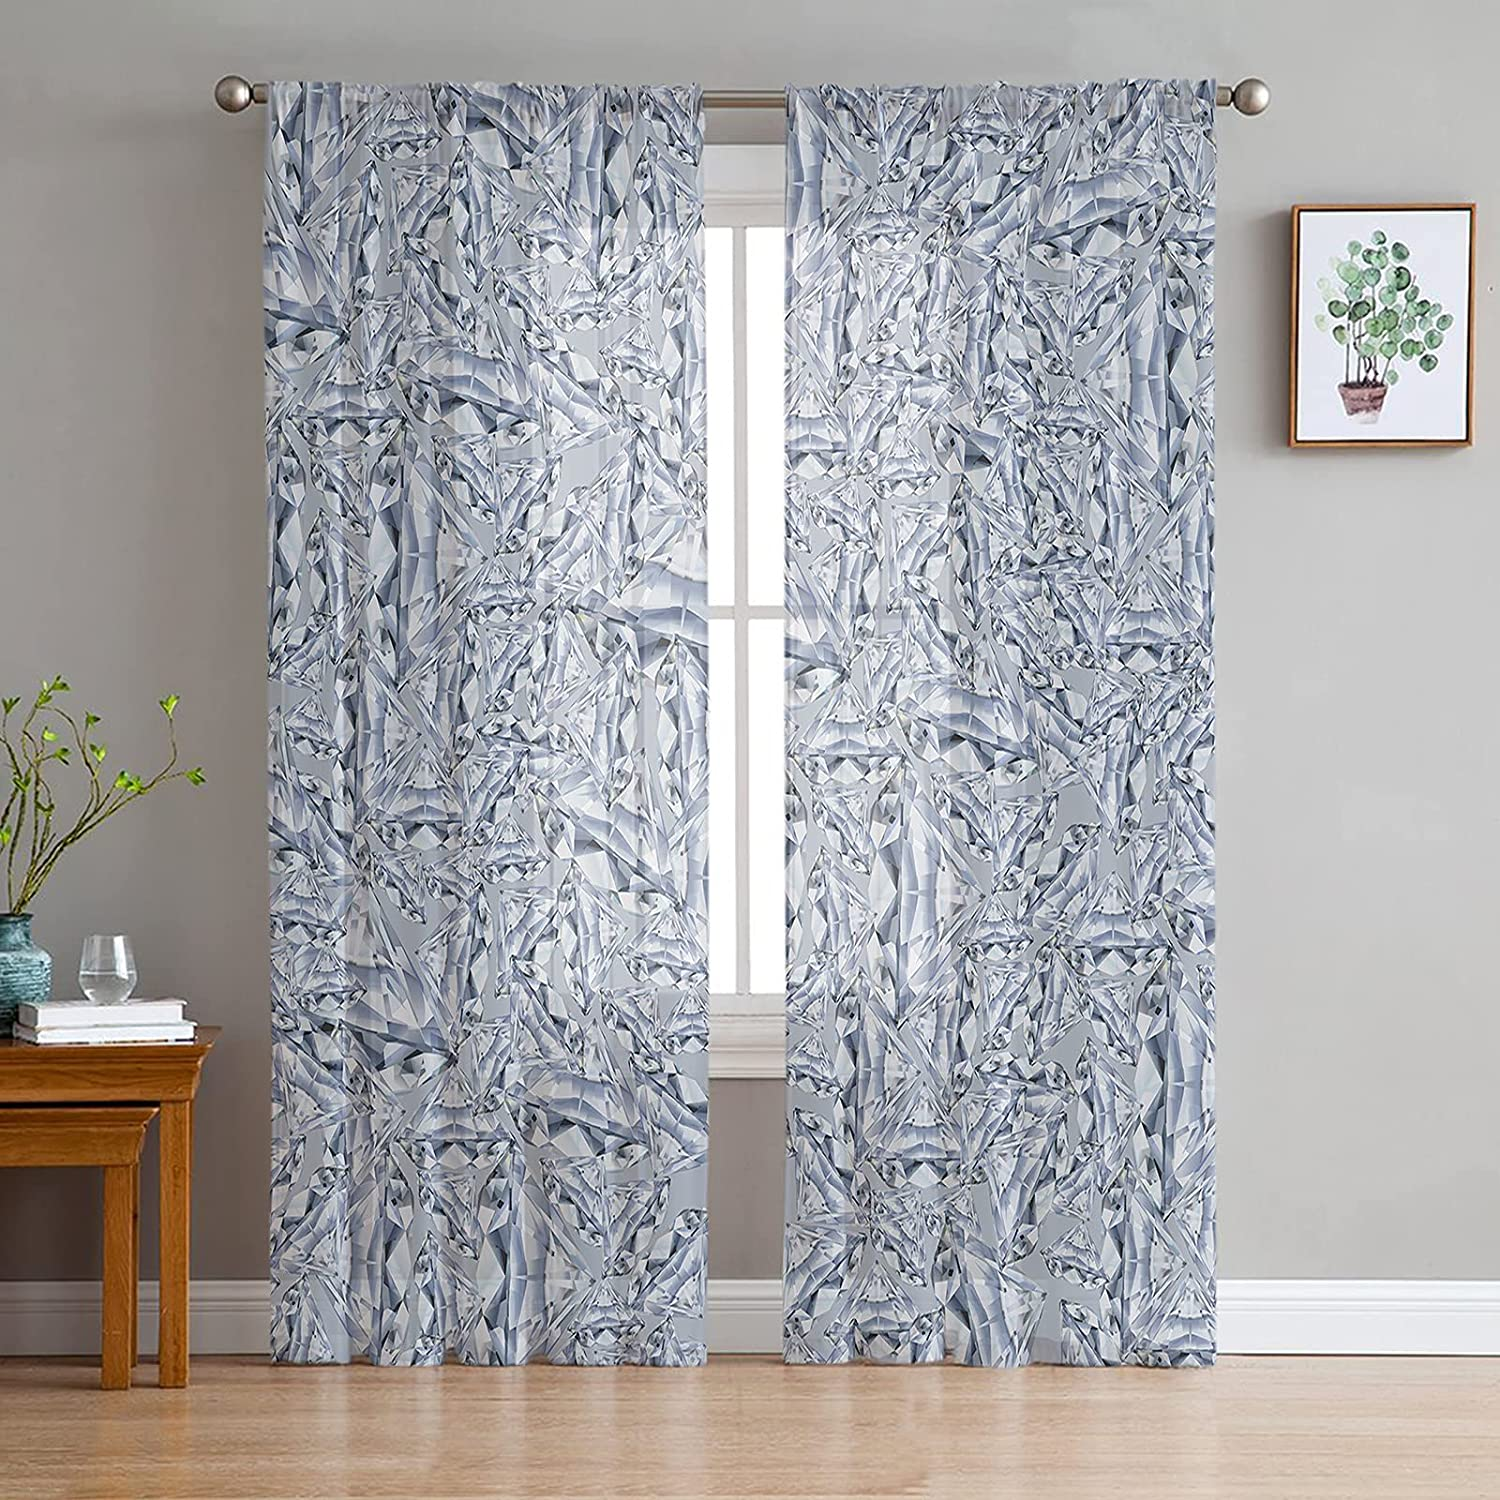 FAMILYDECOR Challenge the lowest price Sheer Curtains 96 inches Grommet W Drapes Voile lowest price Long